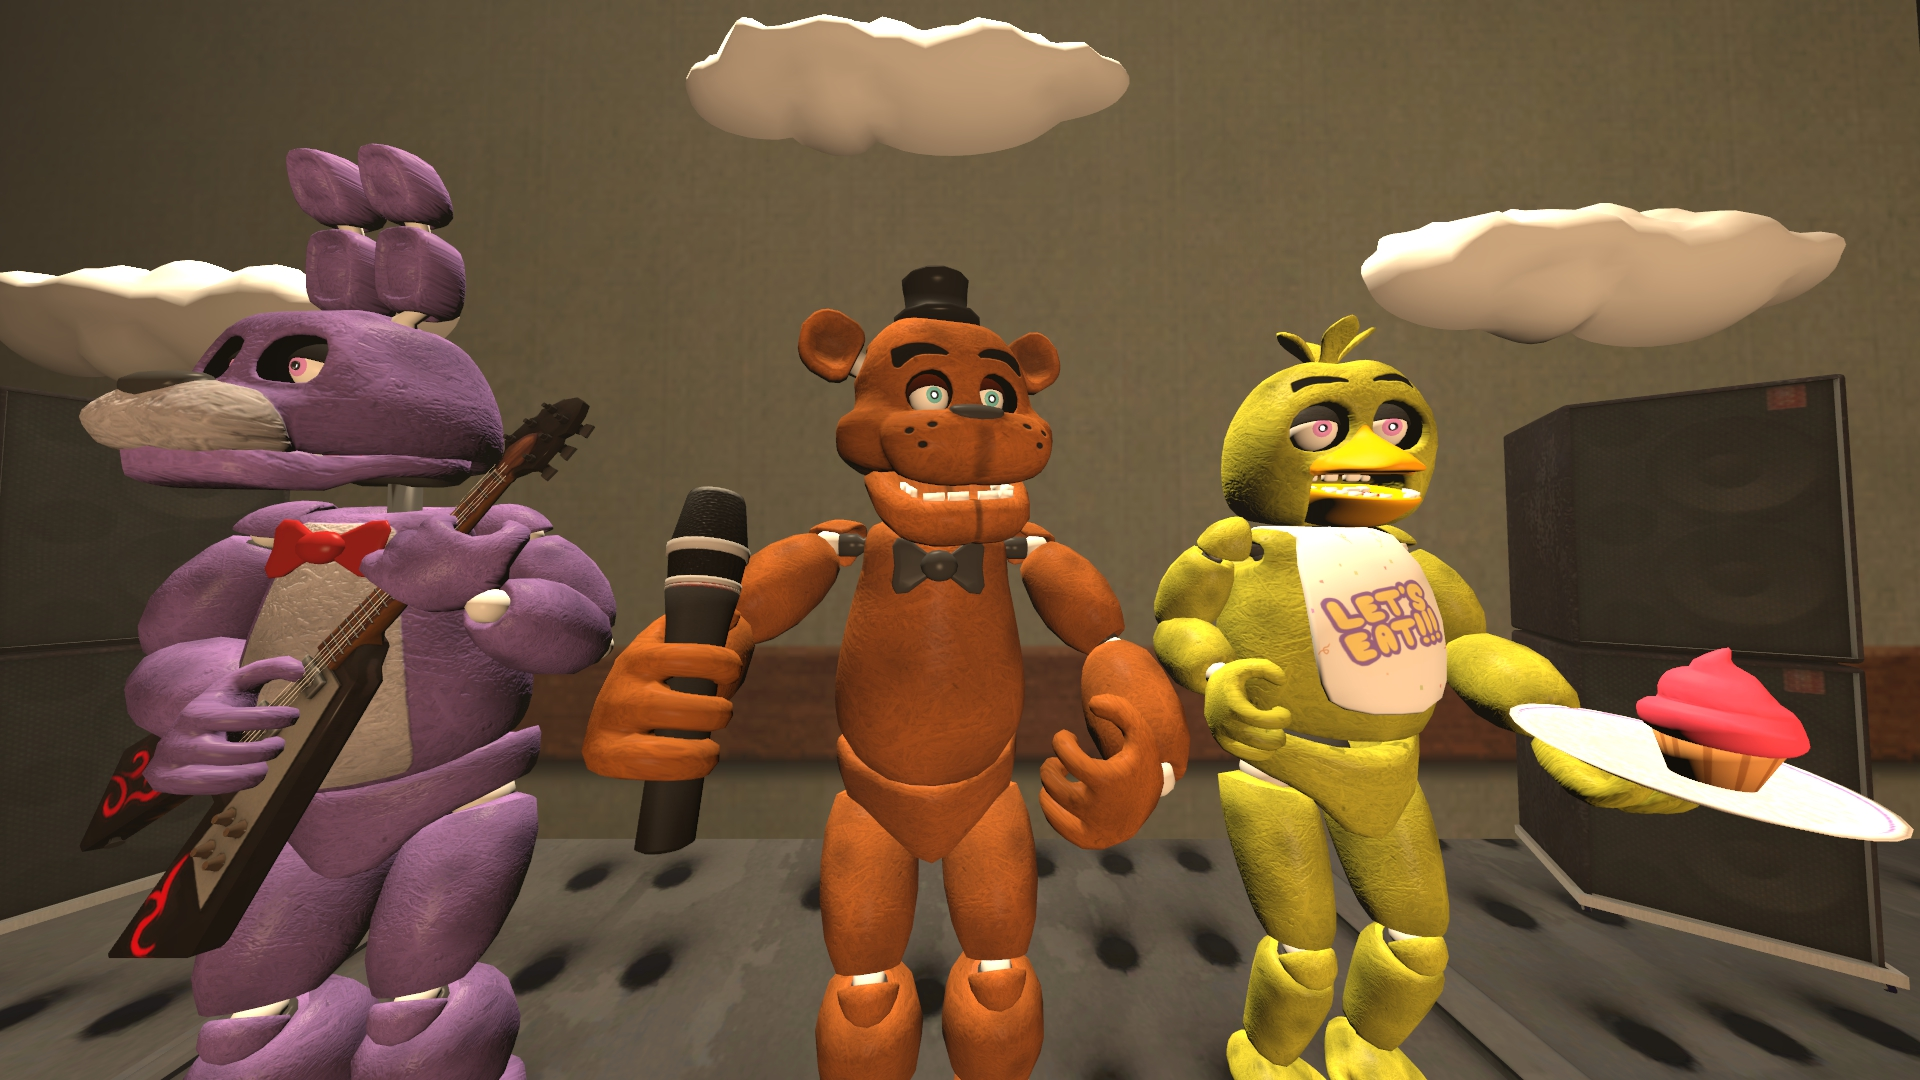 Download) Five nights at freddy's models by